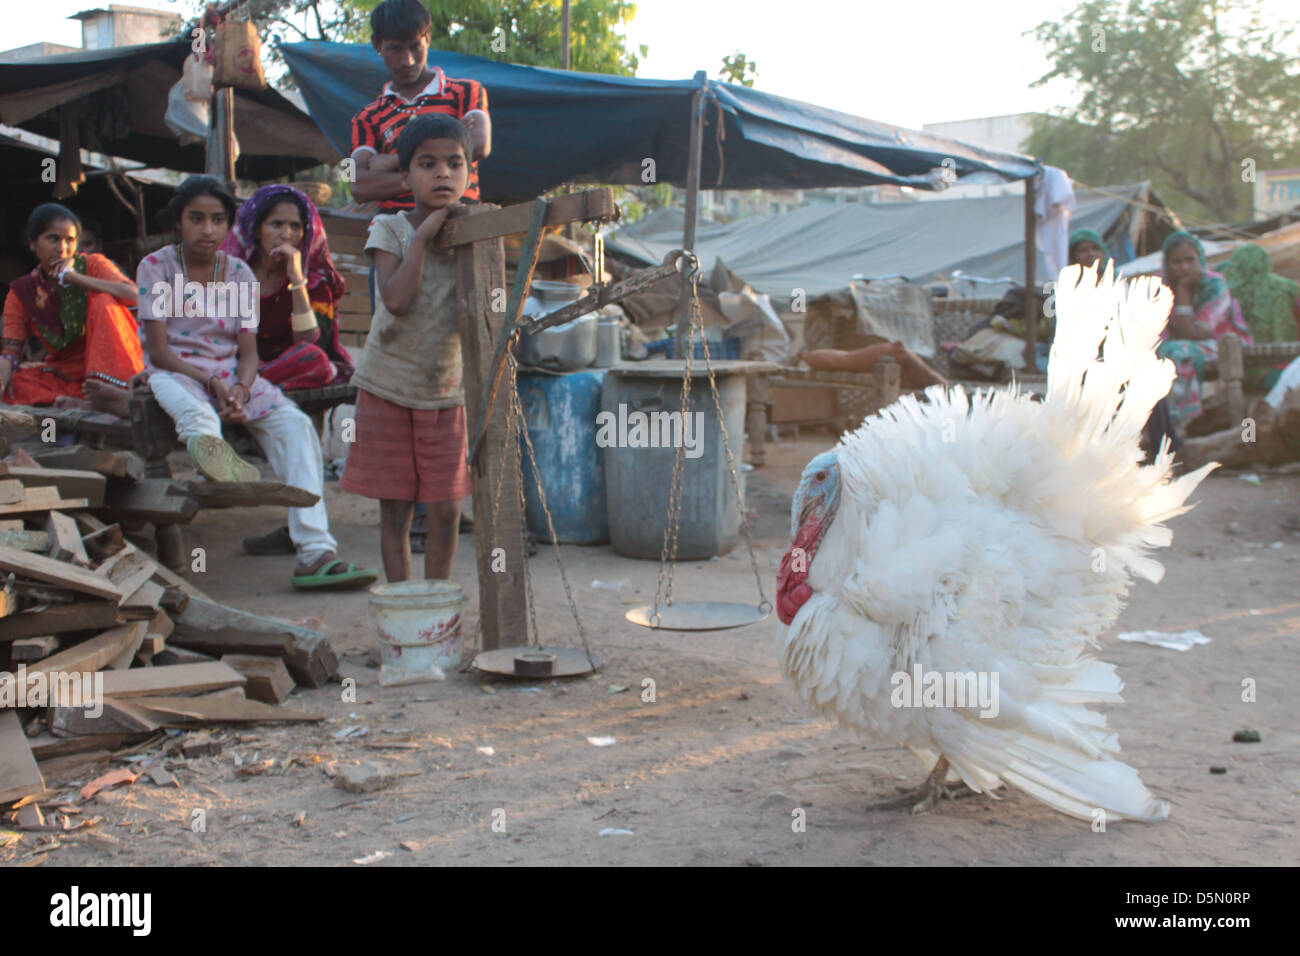 Families of the idol-makers of Ahmedabad, poor but gifted craftsmen, watch a turkey dance in Gujarat, India. - Stock Image